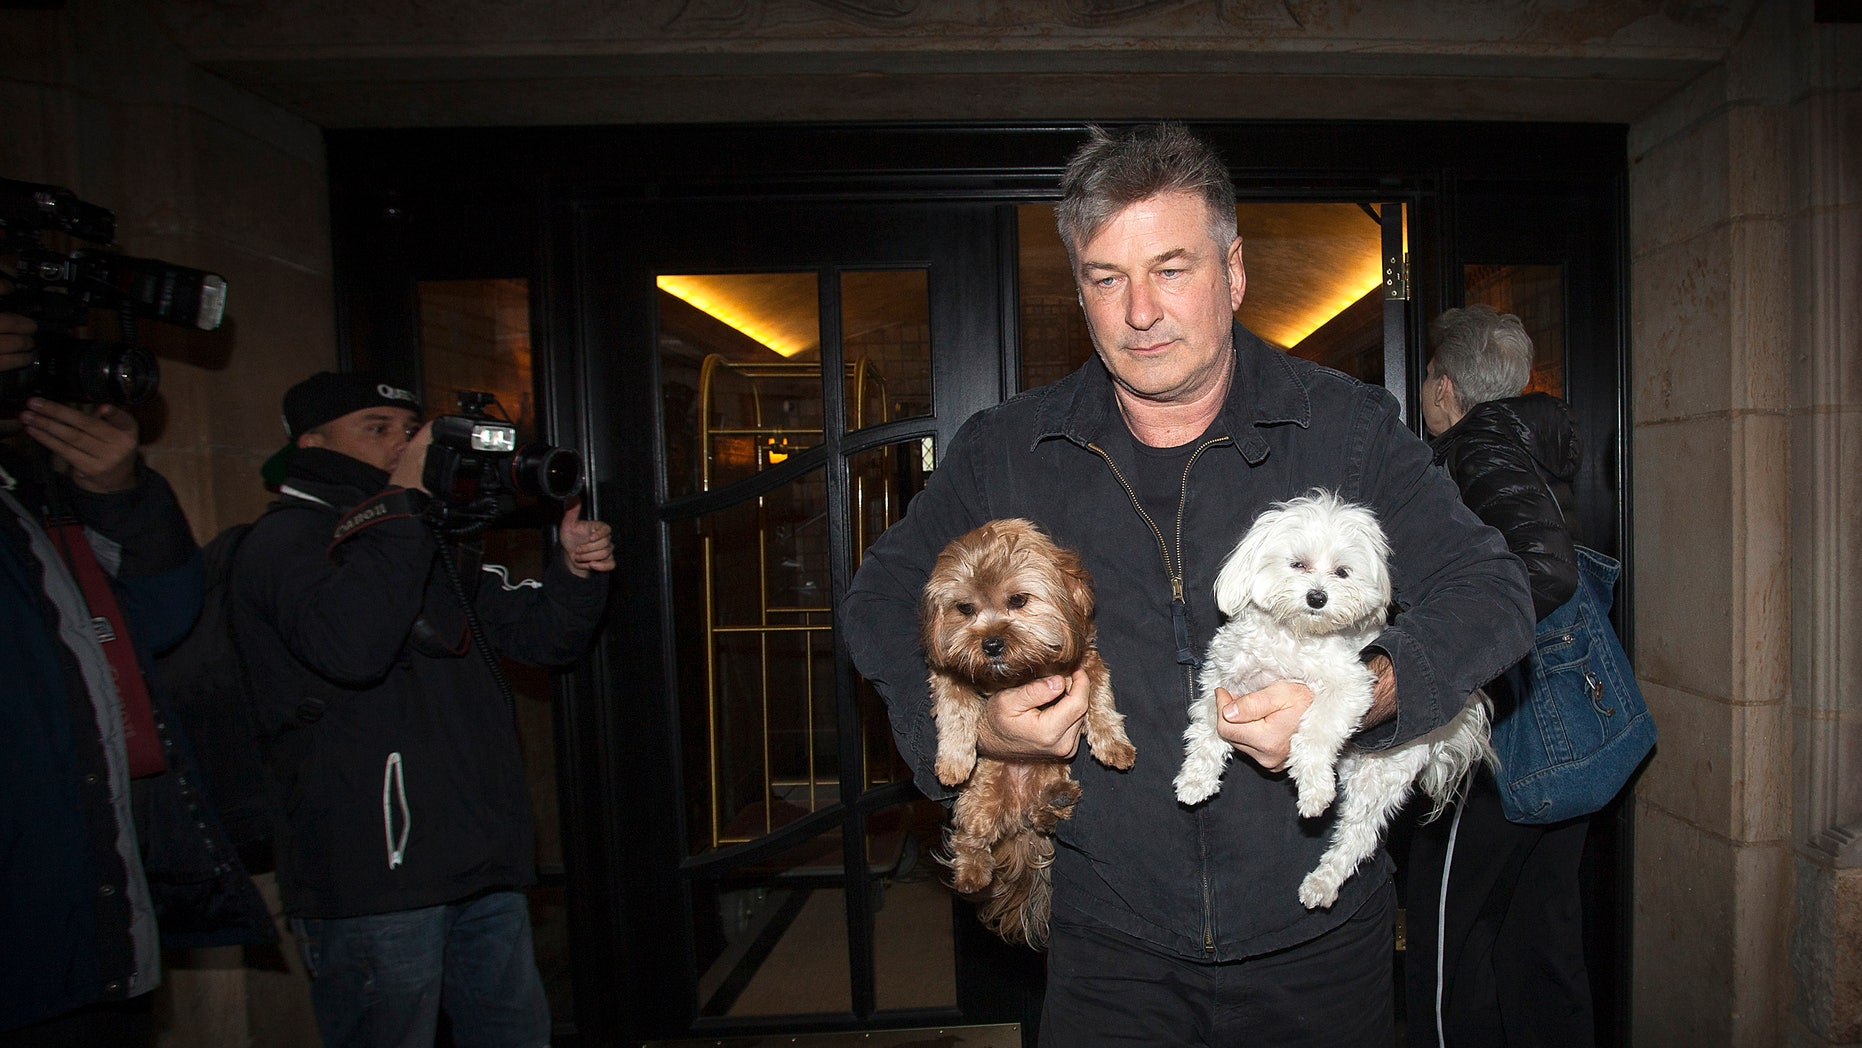 November 15, 2013.Actor Alec Baldwin walks out of his apartment building carrying two dogs in New York. Baldwin assaulted a reporter earlier in the day, according to local media. In the earlier incident, he smacked a mobile phone from the reporter's hands and shoved him against a car.